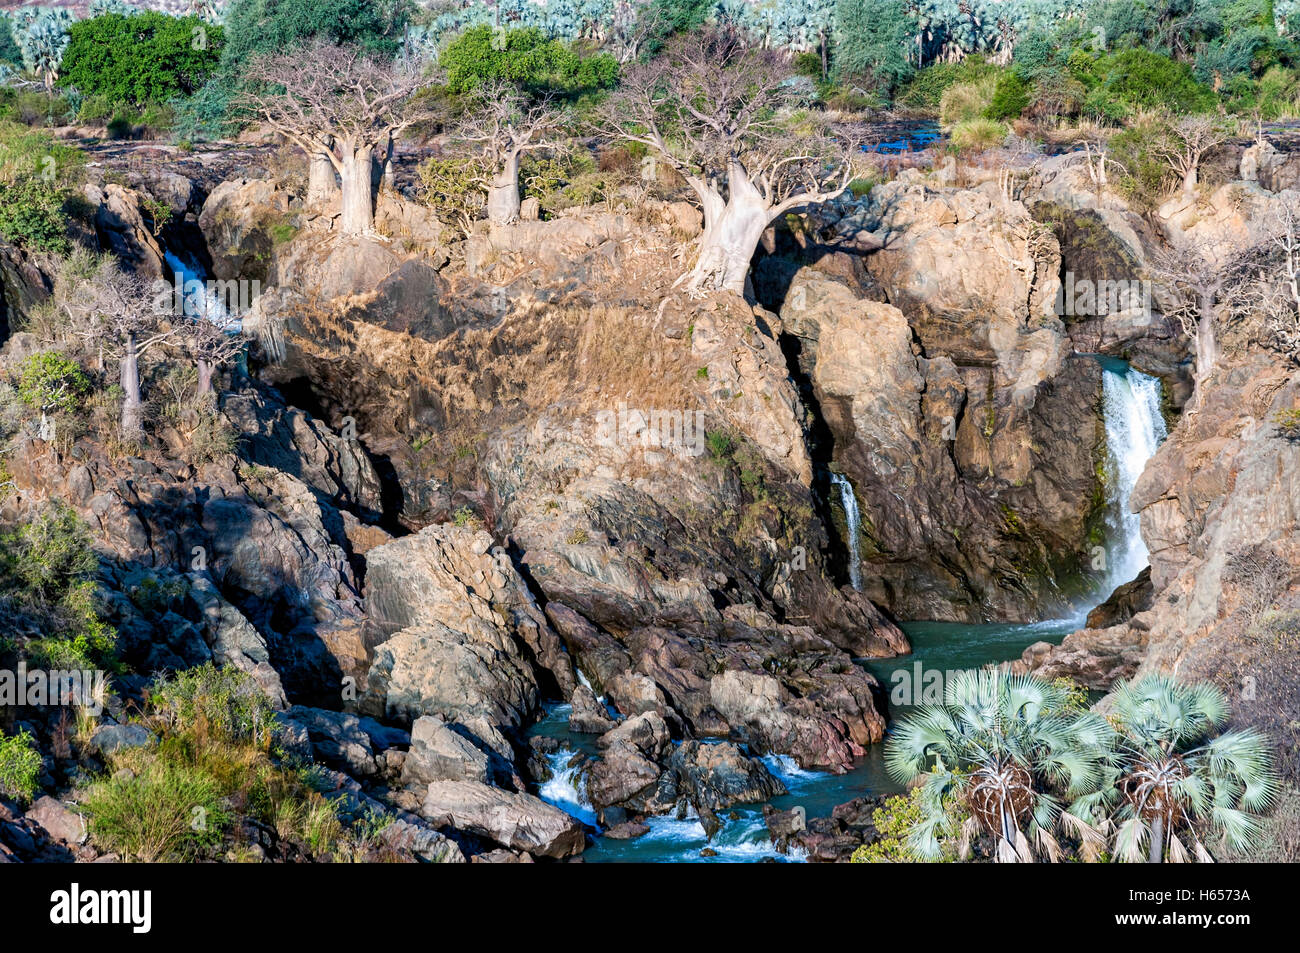 View of Epupa falls on the border of Namibia and Angola. The falls are created by the Kunene River in the Kaokoland - Stock Image